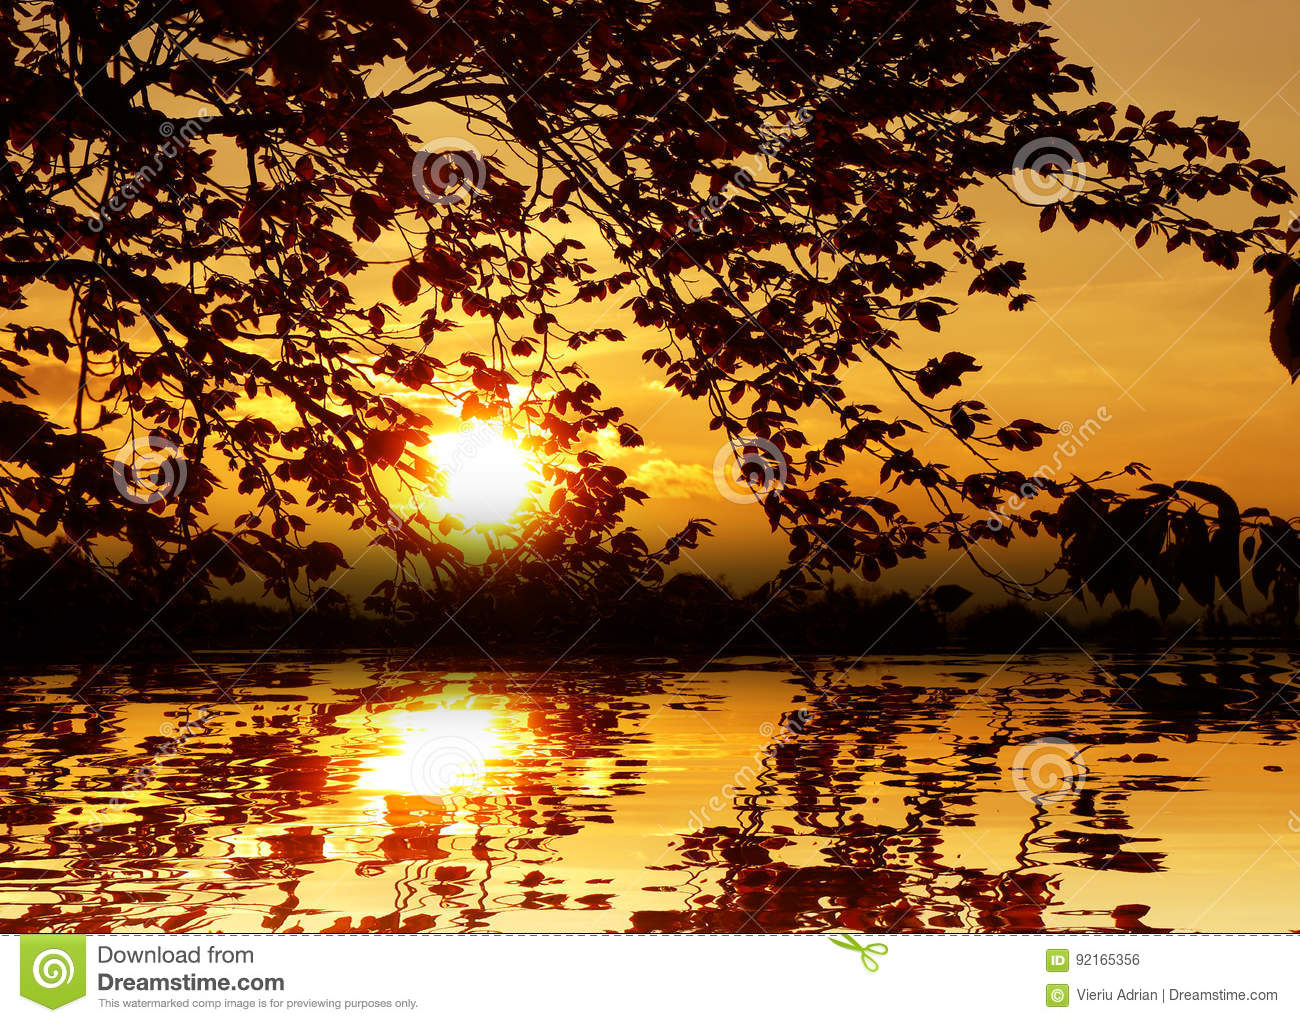 Sunset in the water among the leaves nature background wallpaper